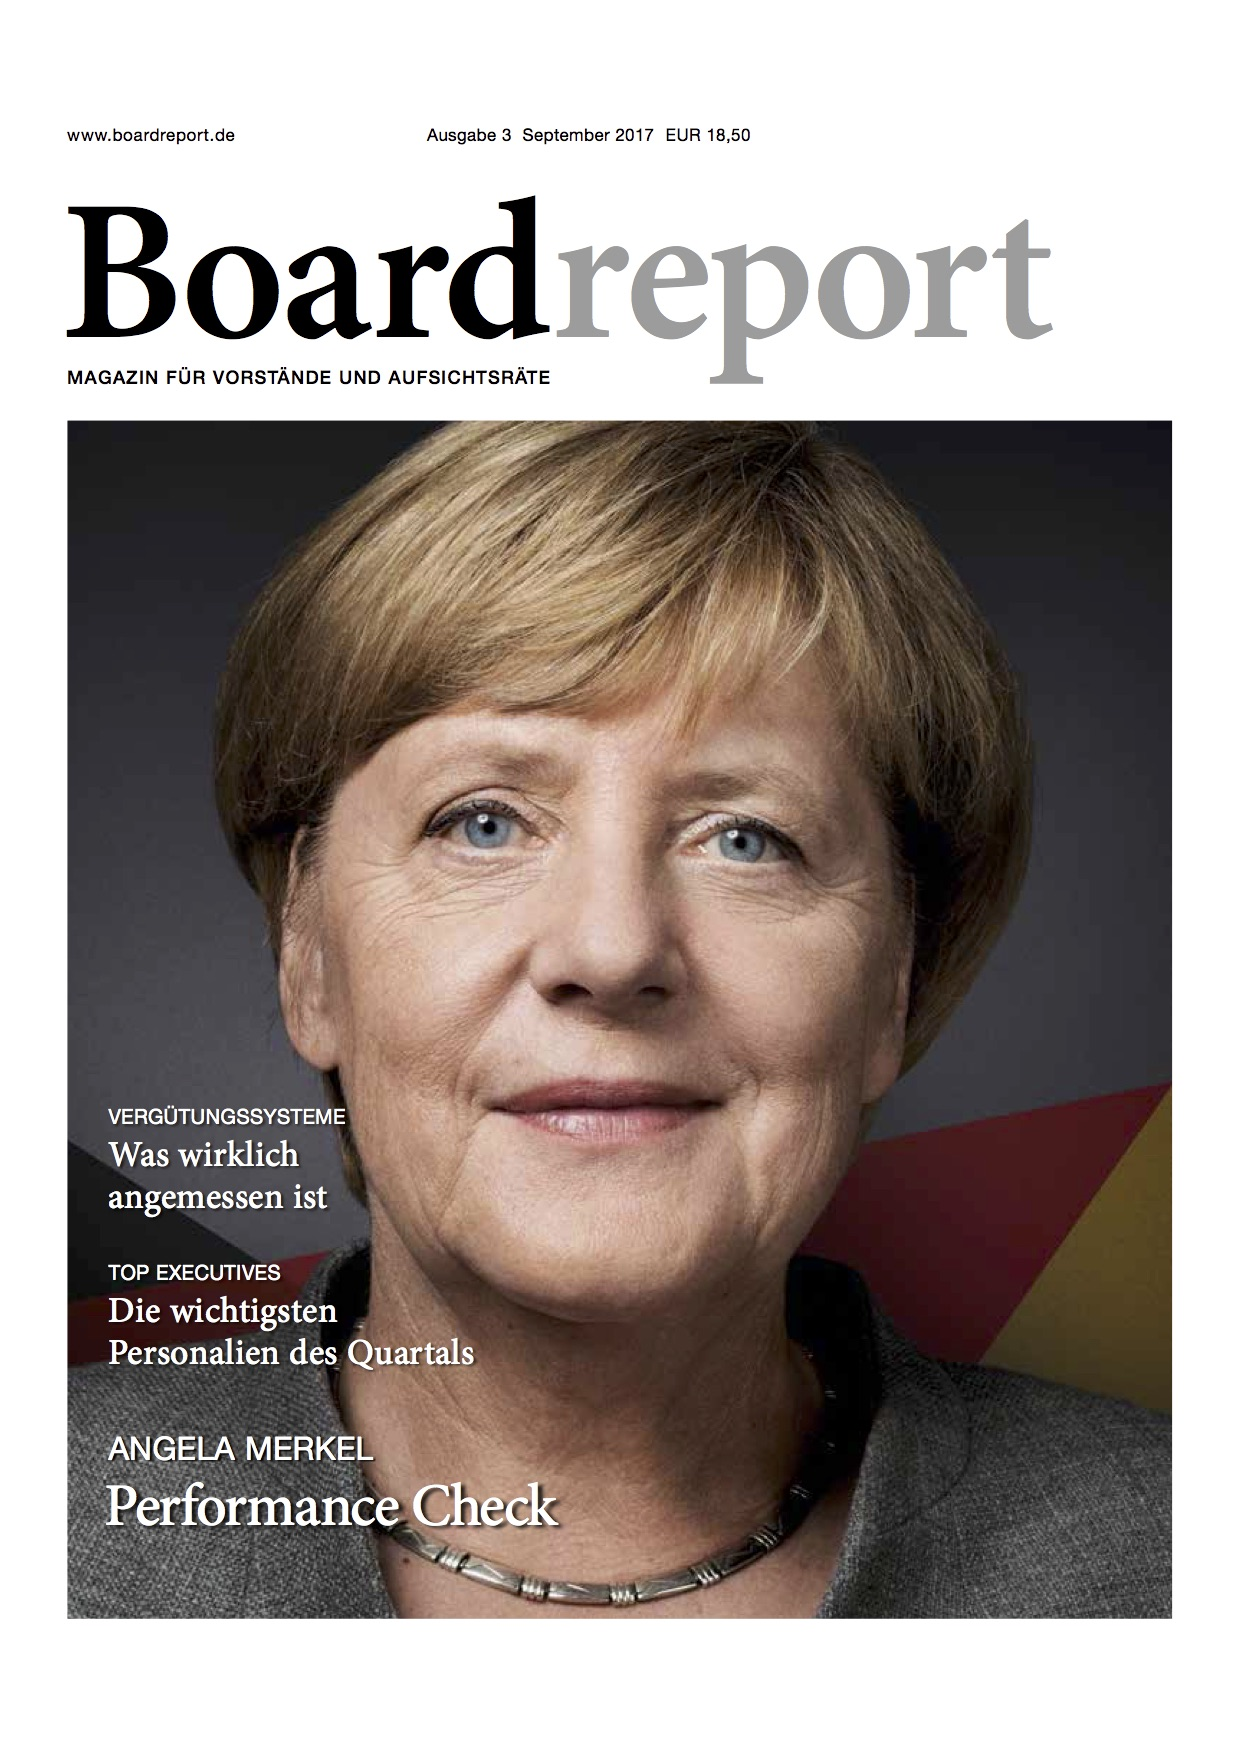 Boardreport Cover Ausgabe 3 2017